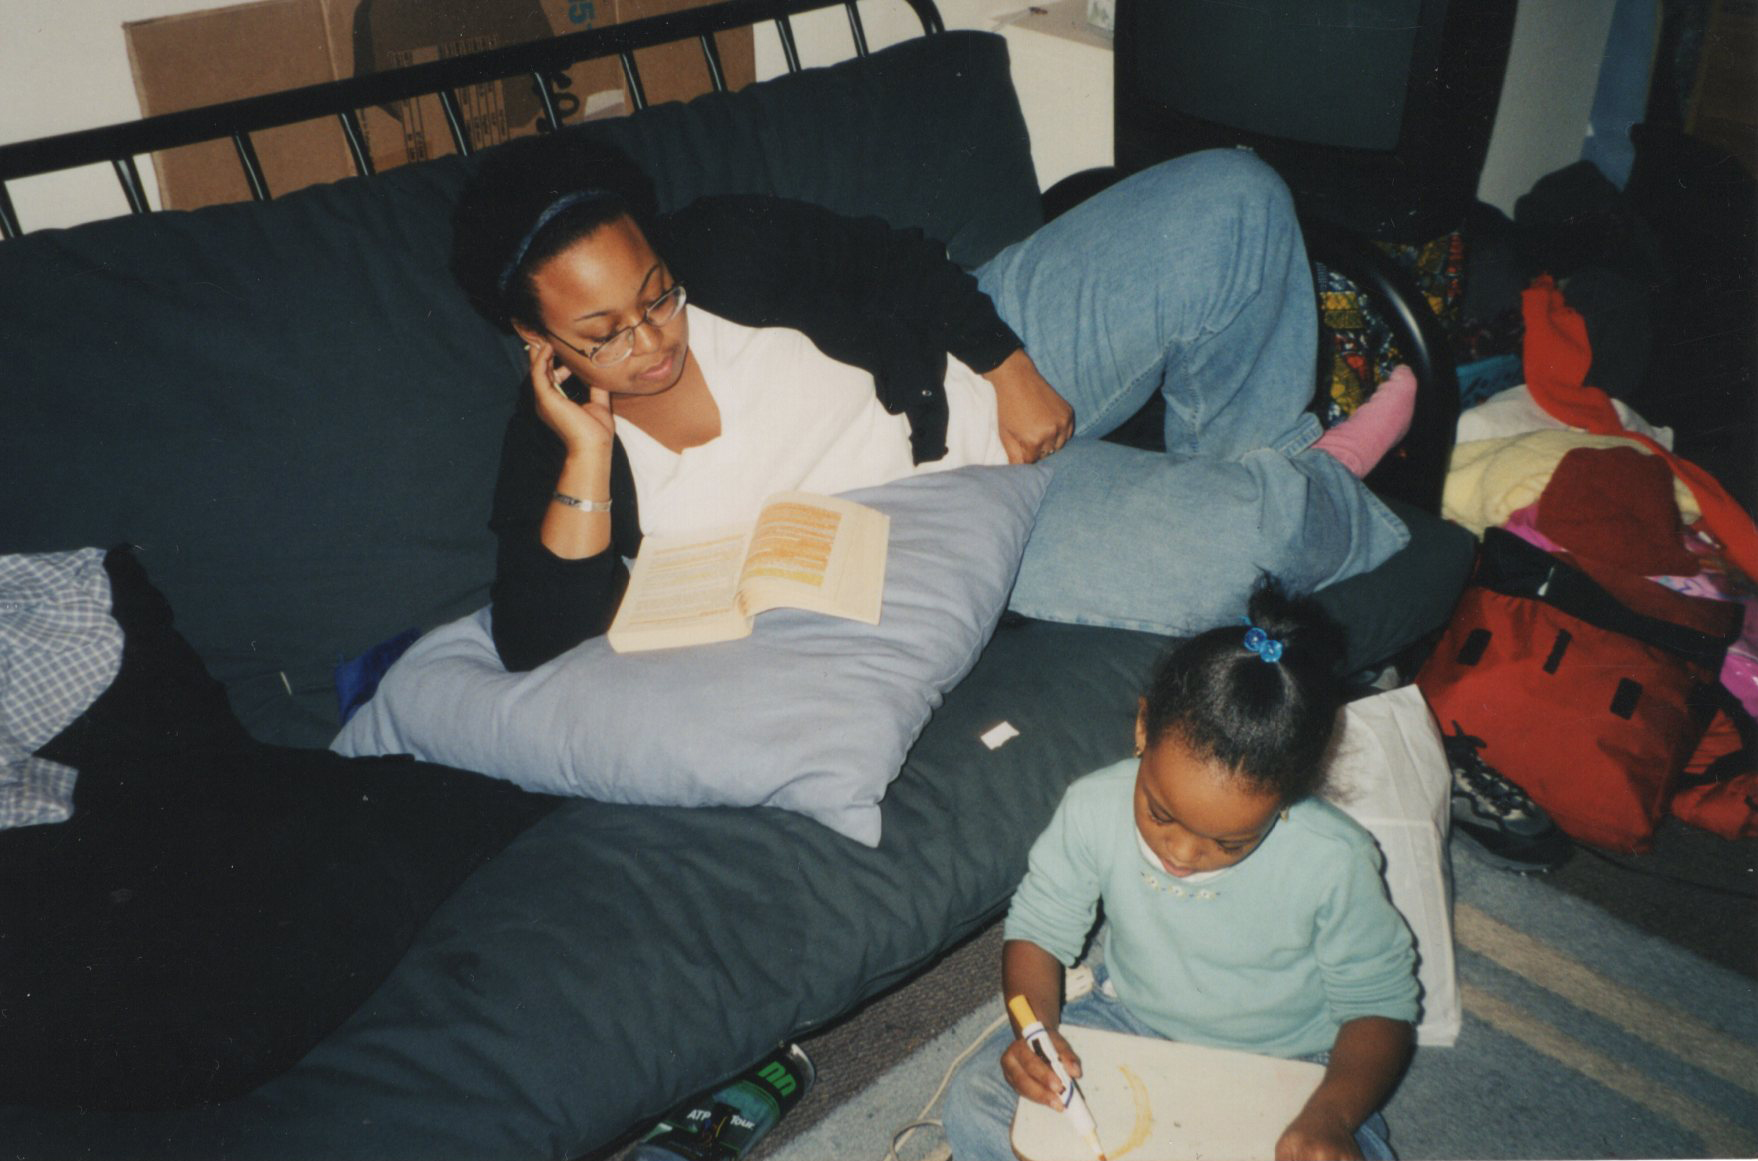 Christa studying with her daughter, Nikierra.